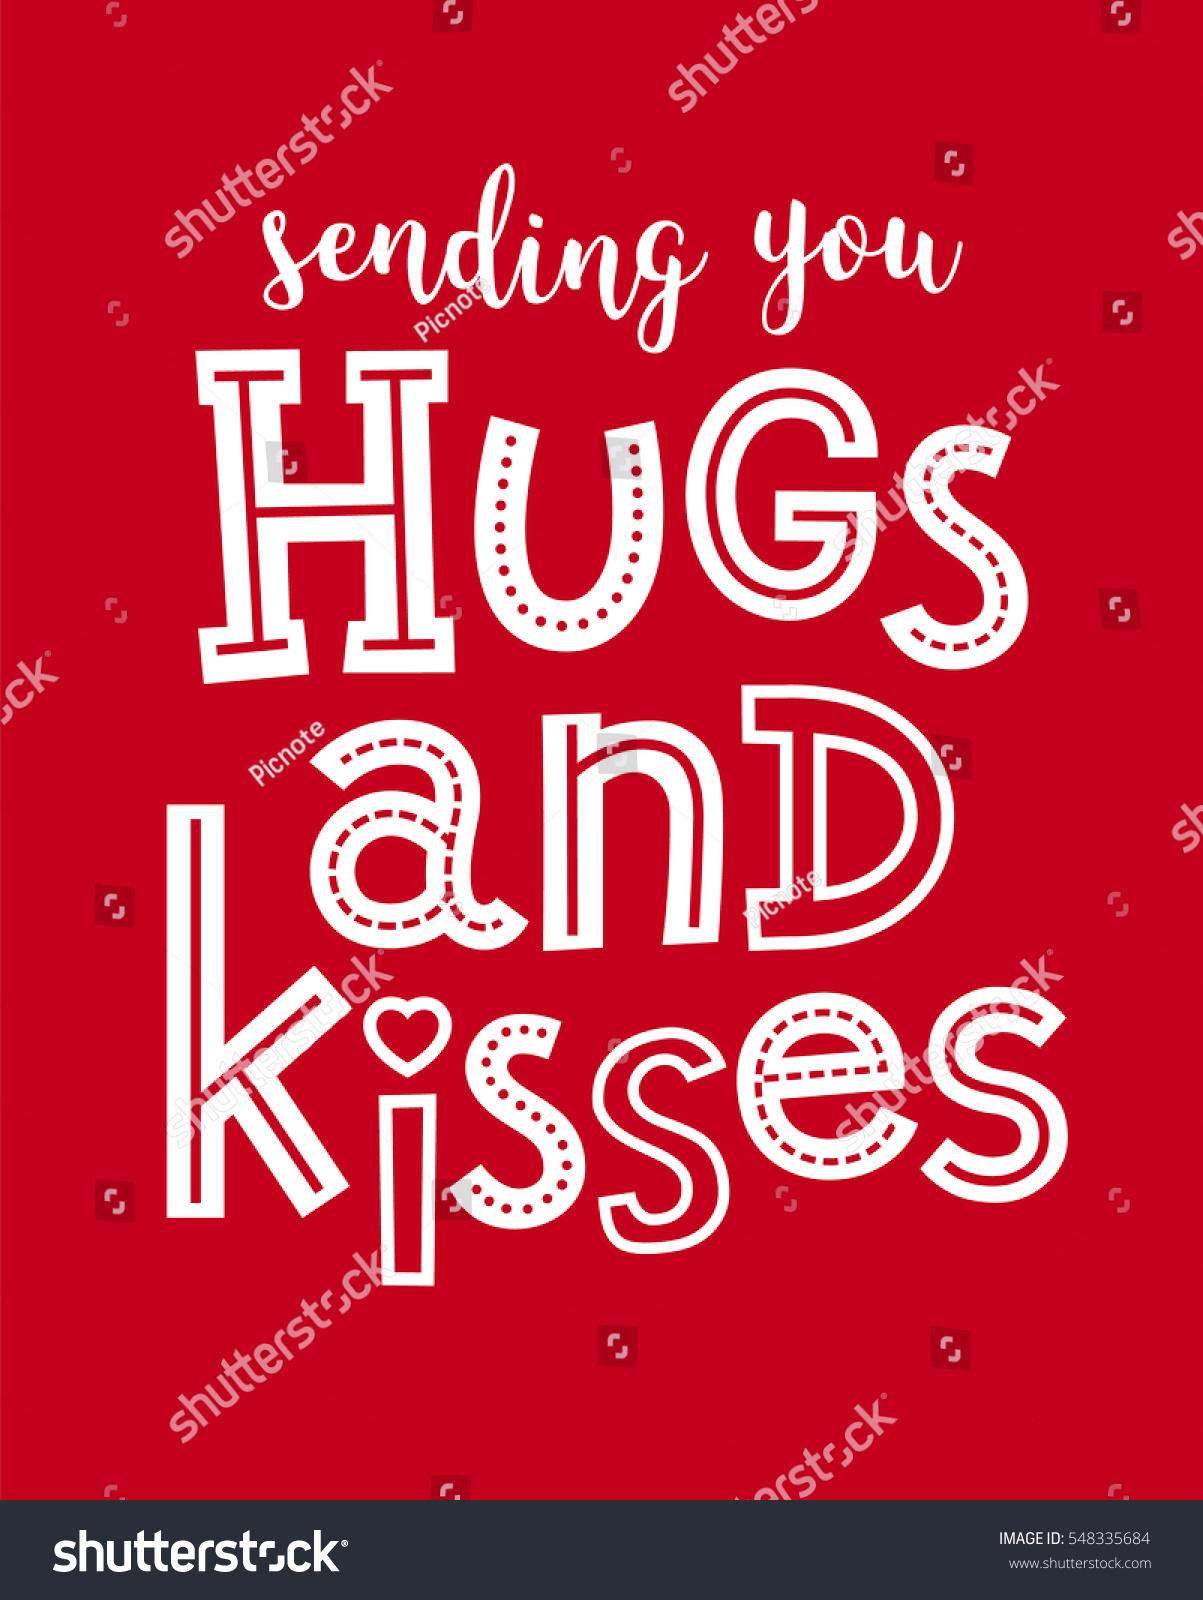 Hugs And Kisses For You : kisses, Sending, Typography, Illustration, Stock, Vector, (Royalty, Free), 548335684